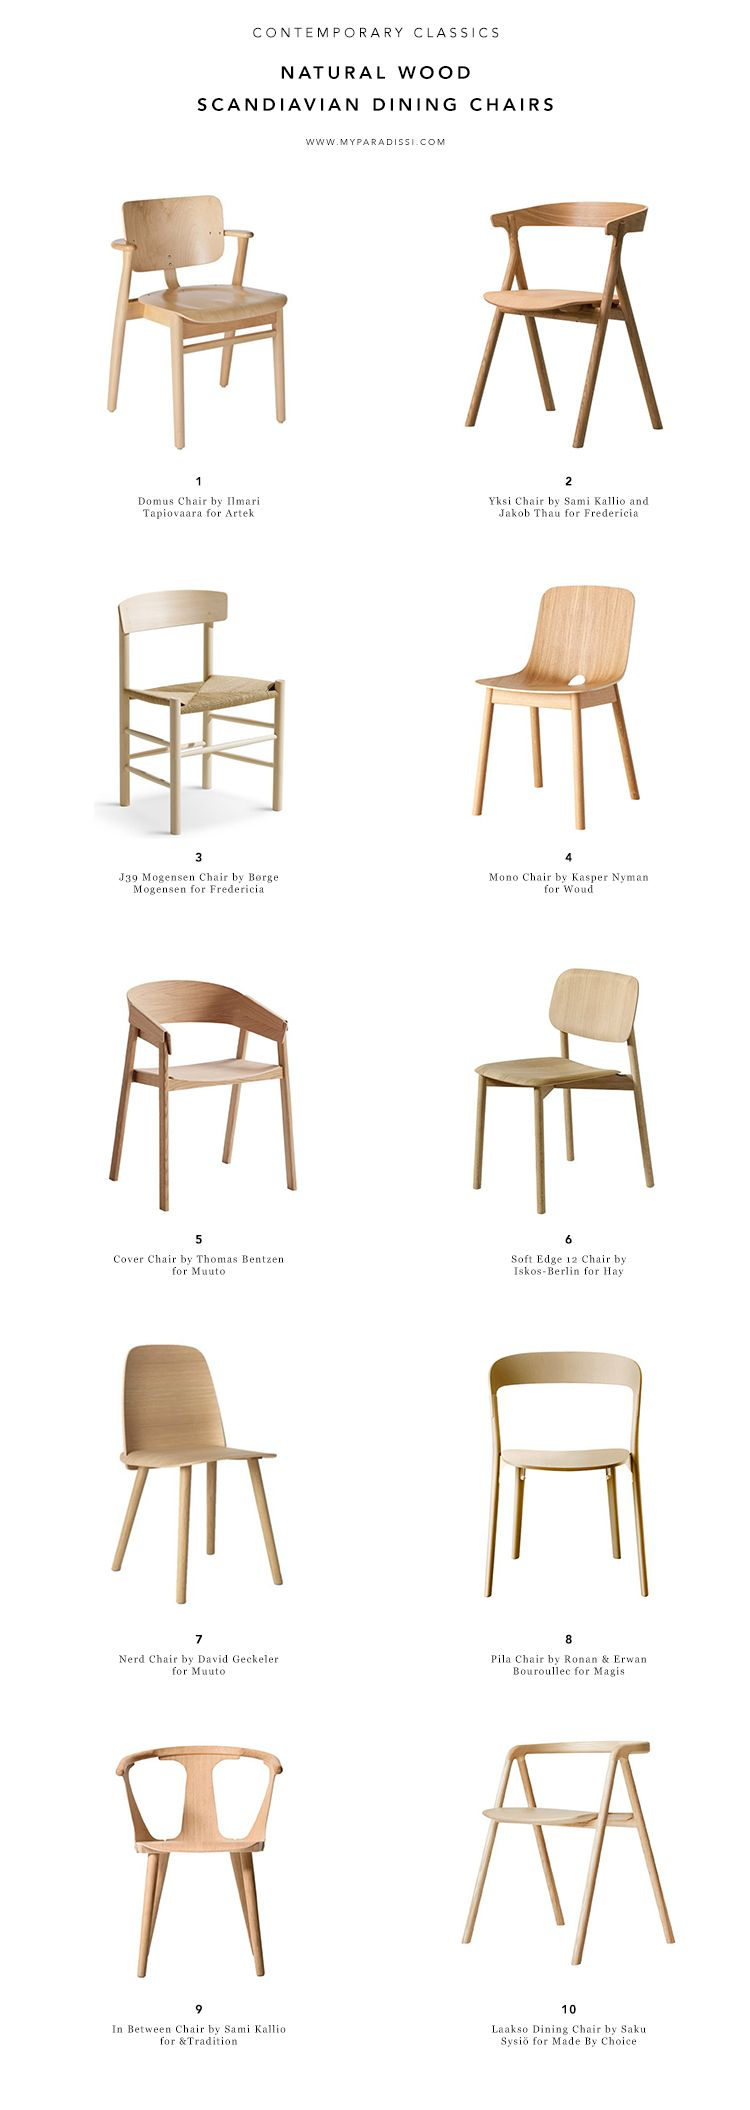 Photo of CONTEMPORARY CLASSICS: Scandinavian natural wood dining chairs